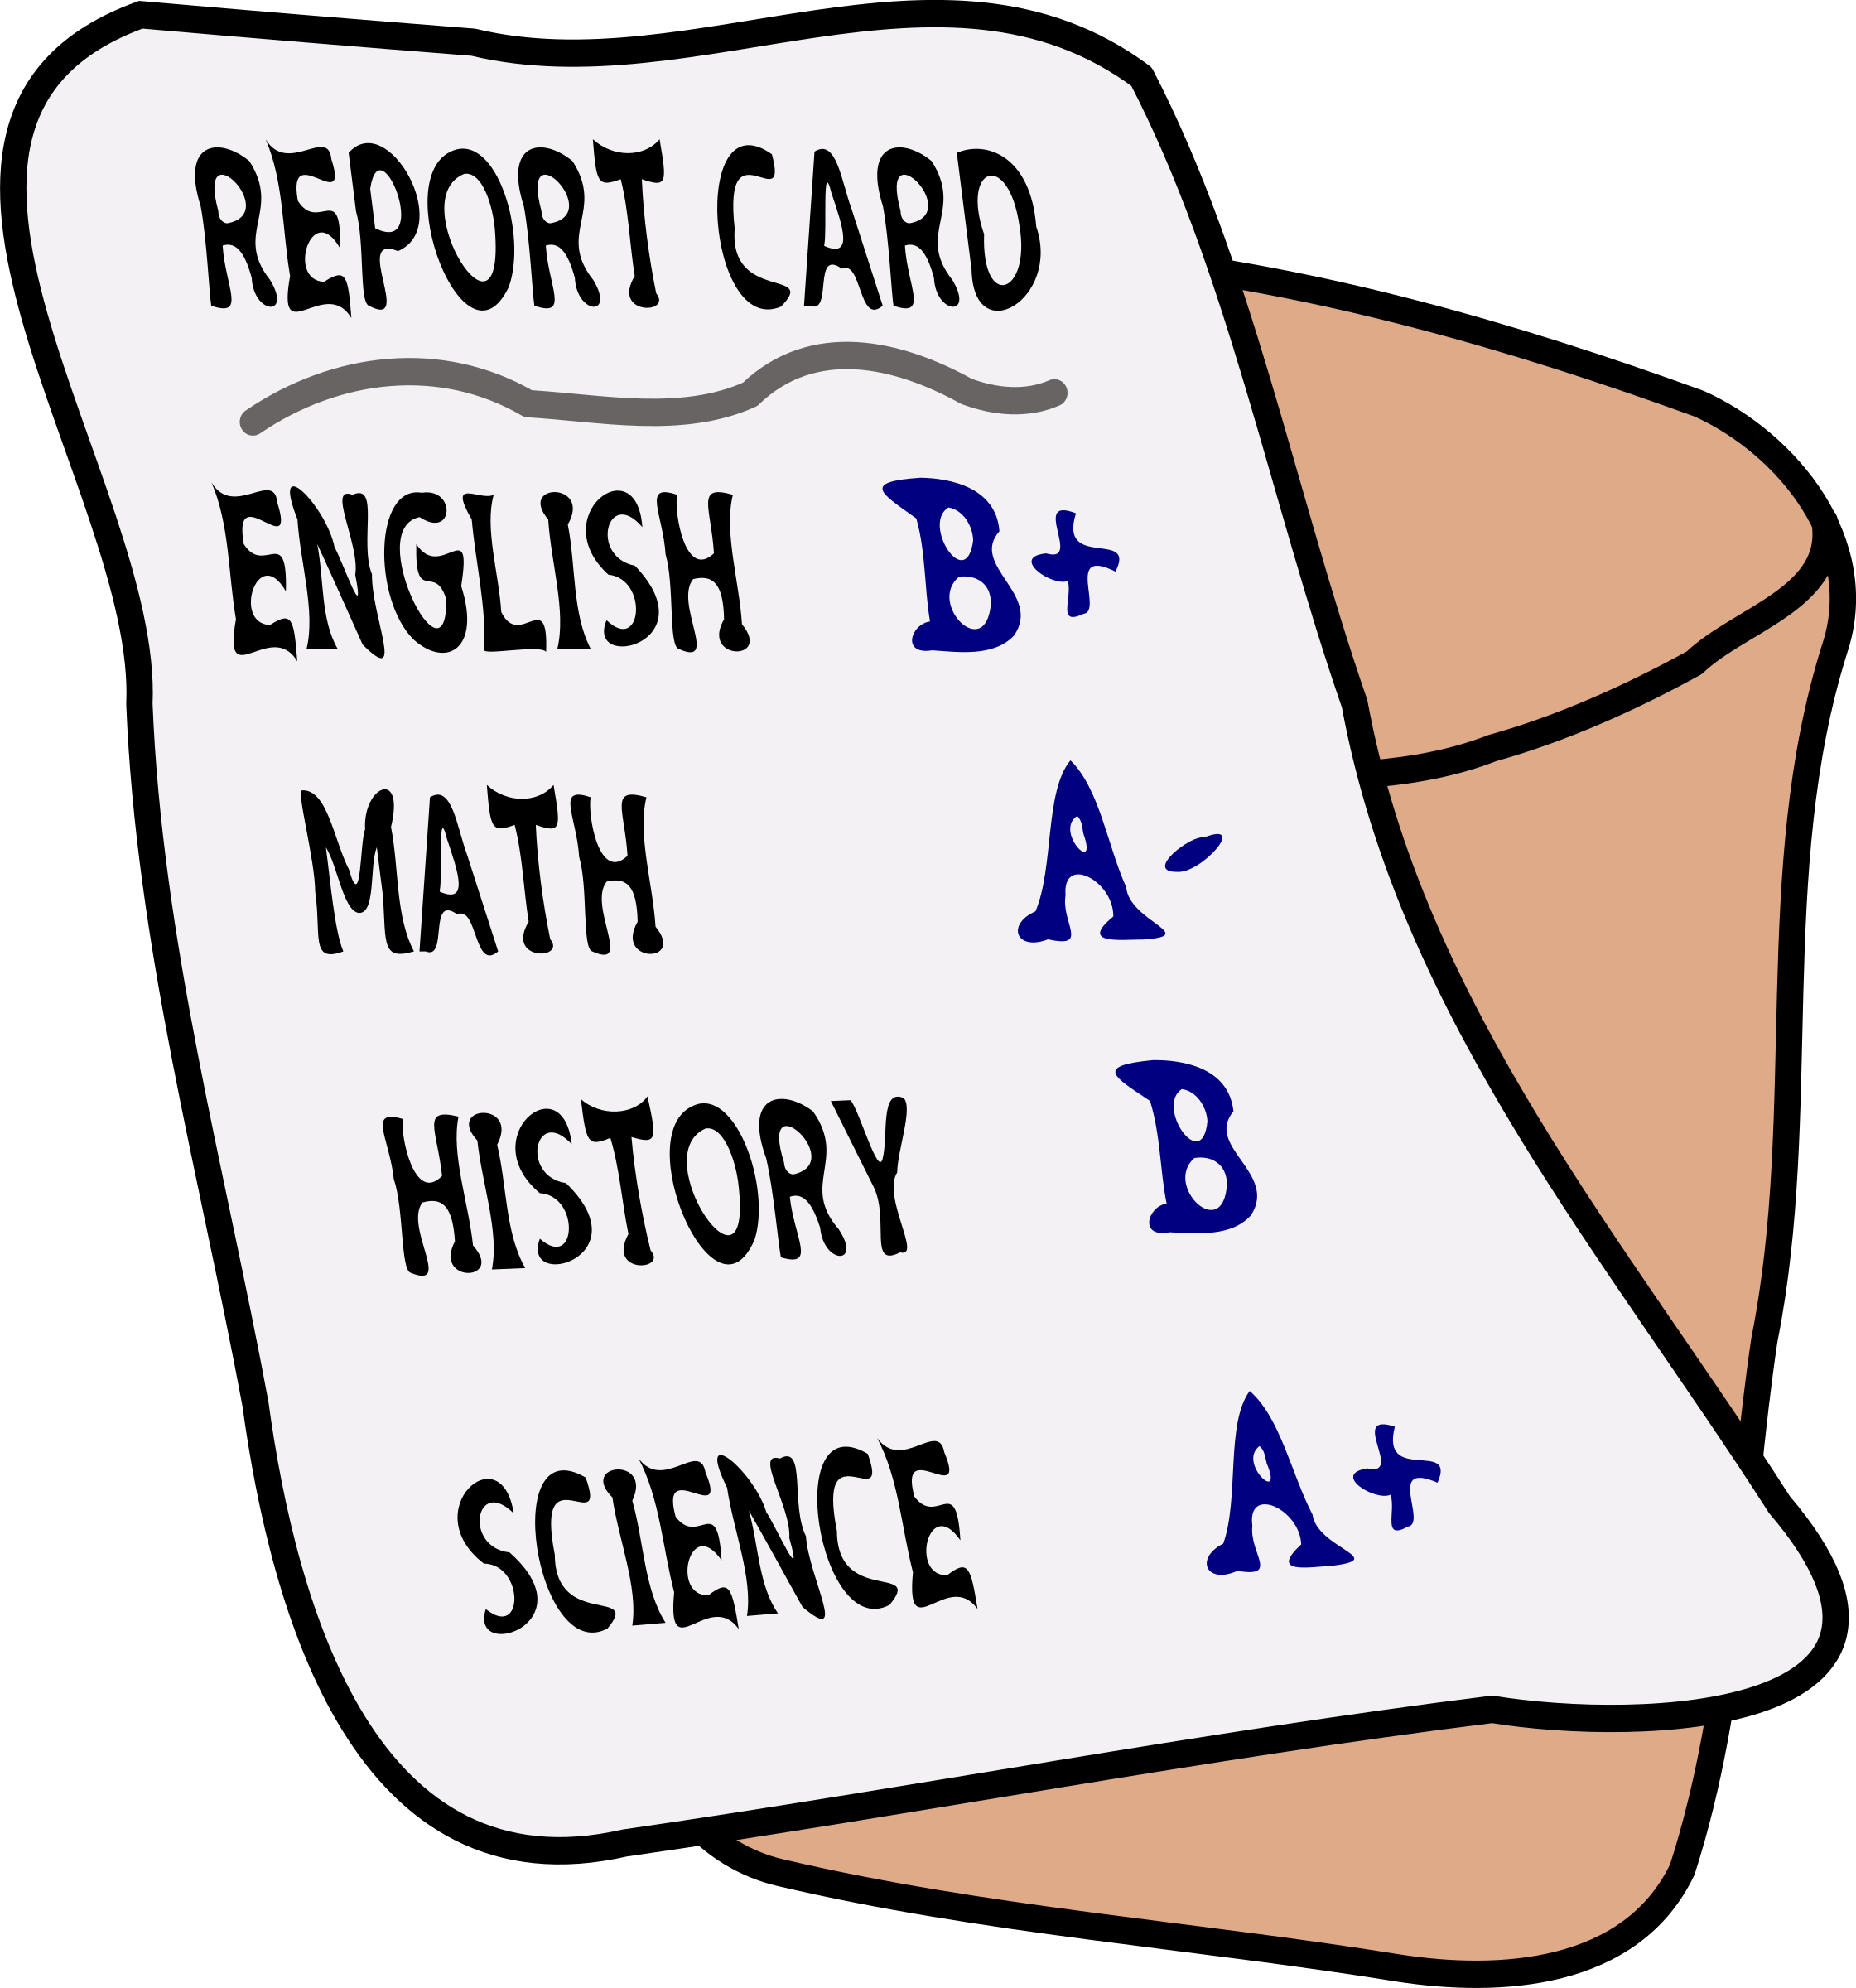 A Report Card PNG - 171008